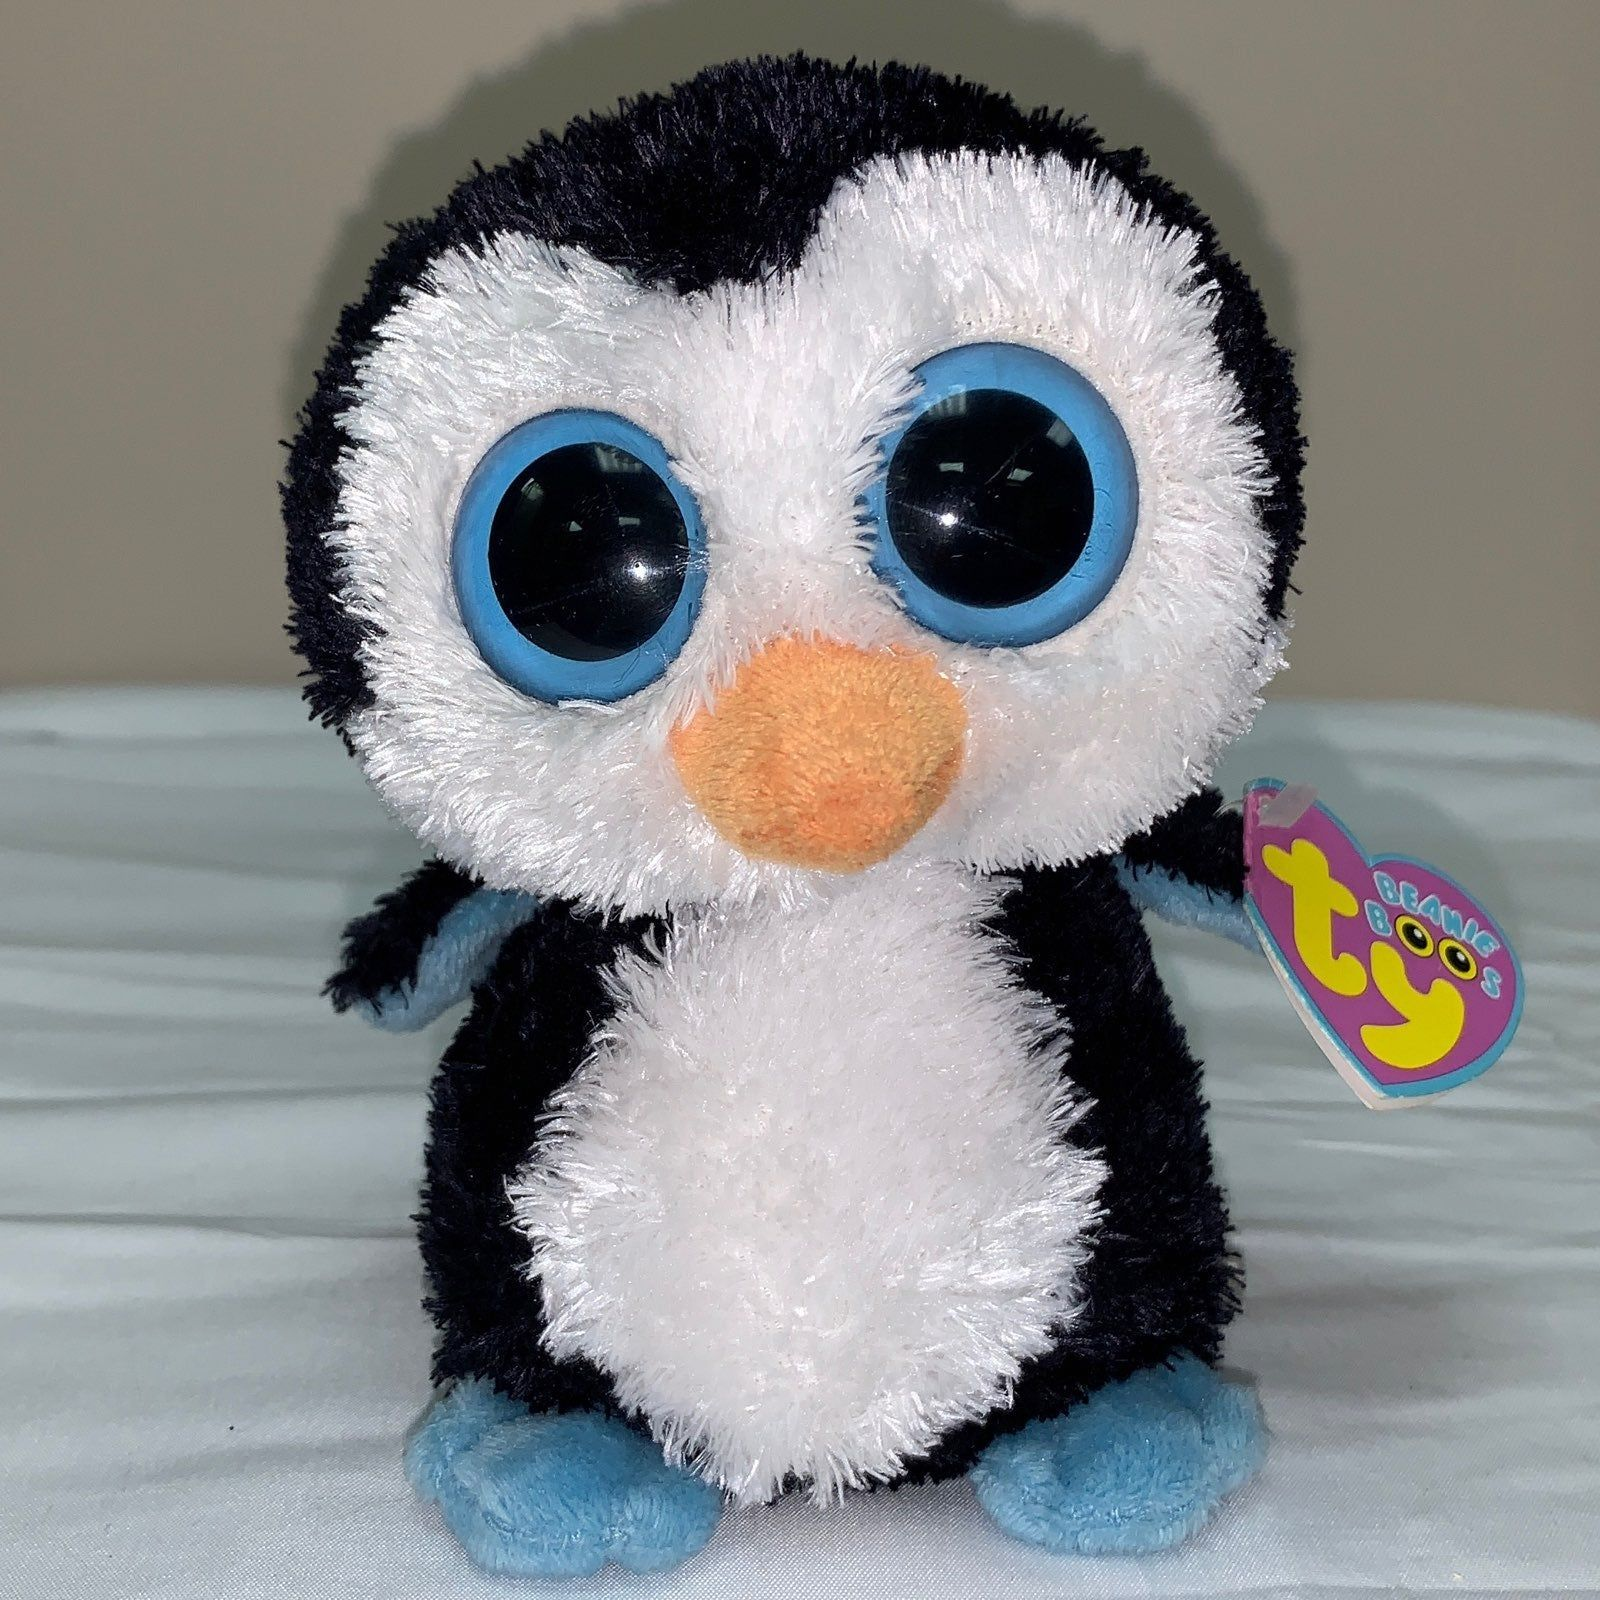 Waddle Beanie Baby Value Online